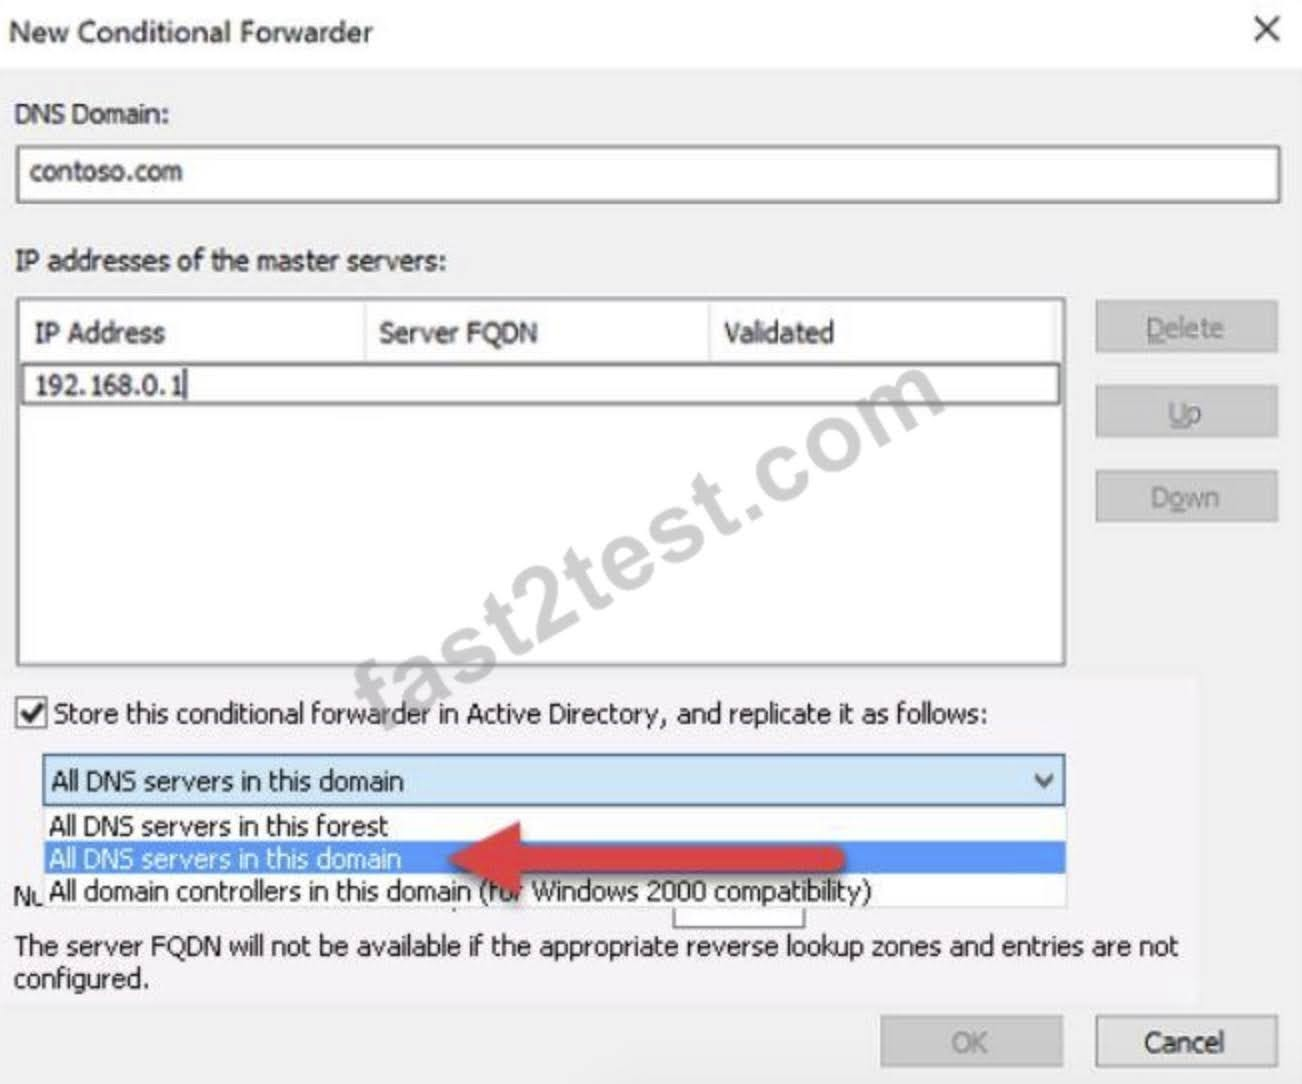 Check the box for Store this conditional forwarder in Active Directory, and replicate it as follows, then select the option for All DNS servers in this domain.